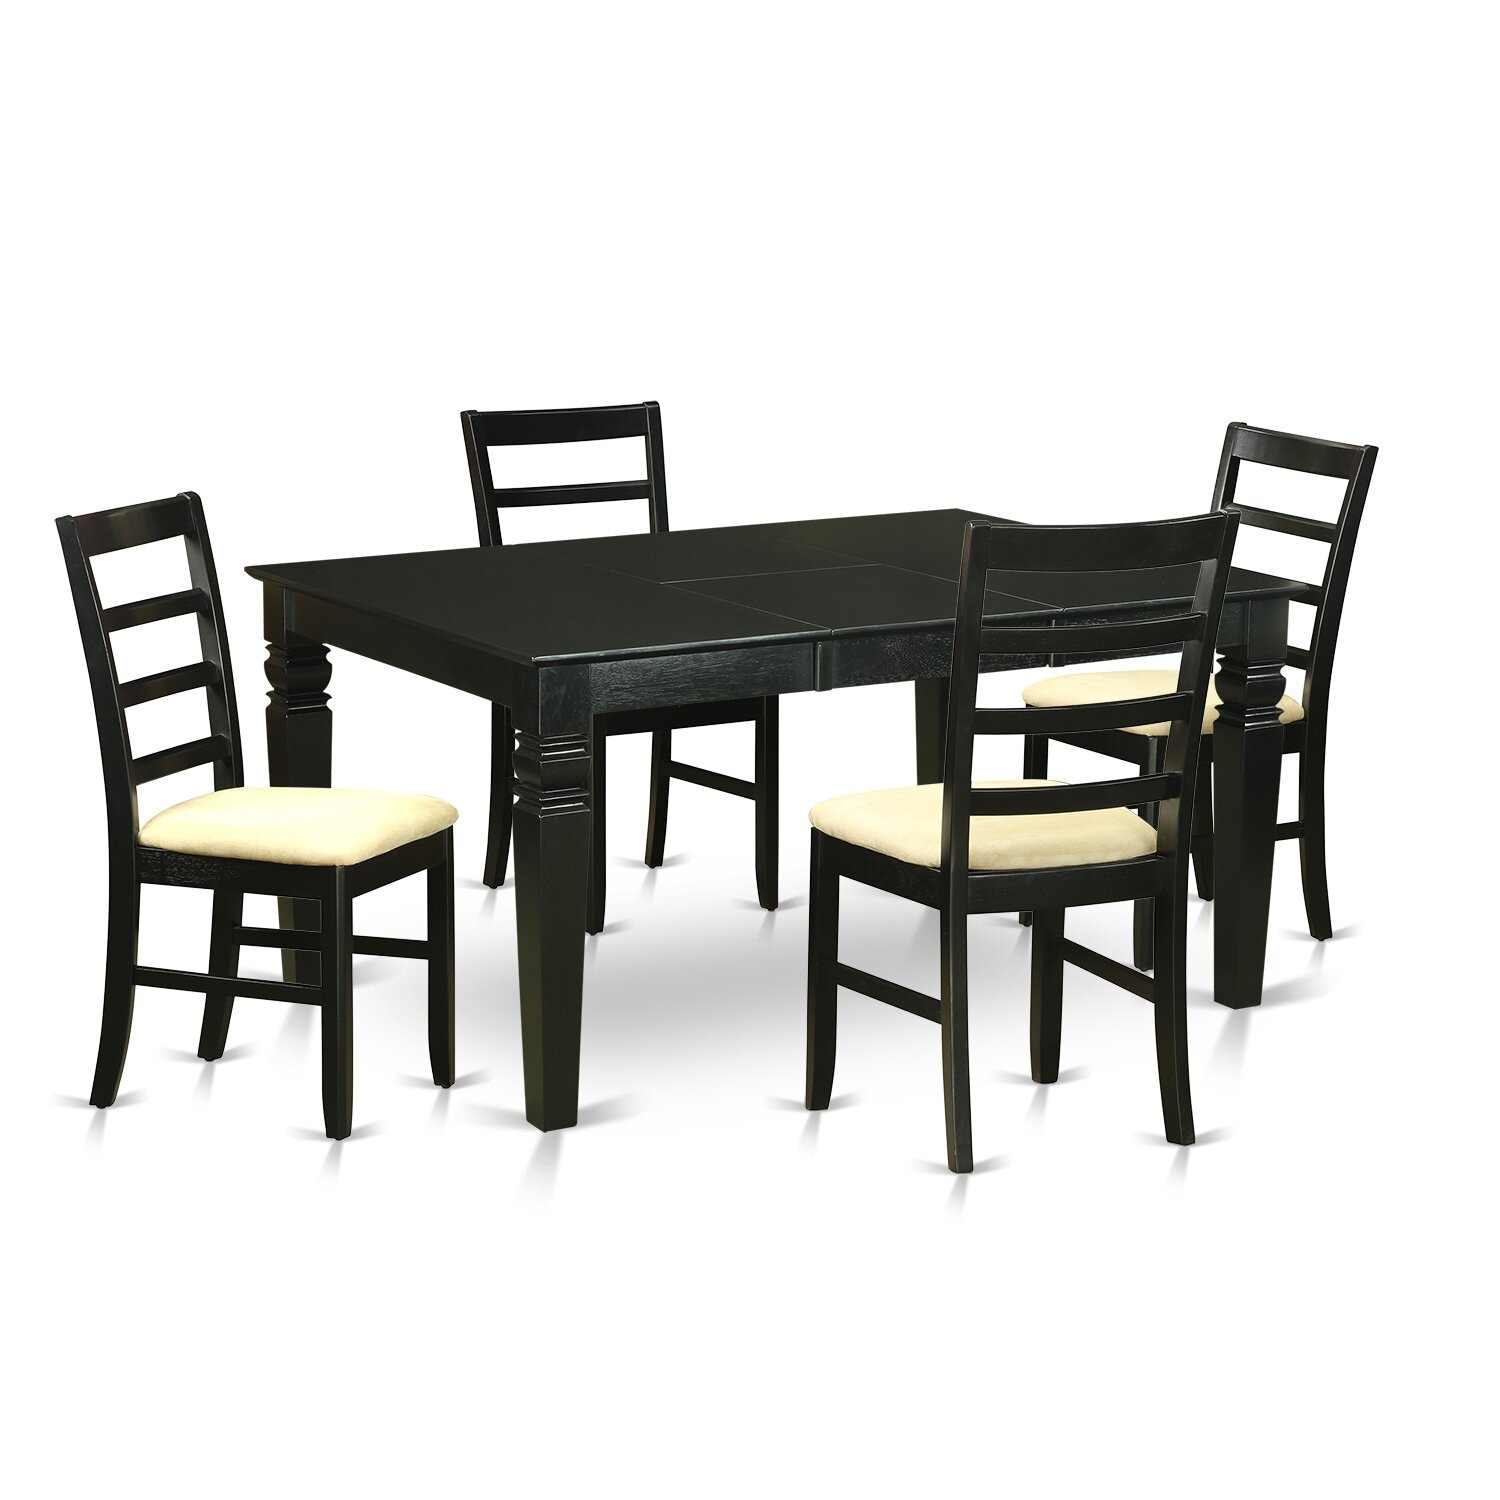 Wooden importers weston 5 piece dining set wayfair for Small table and 4 chair set